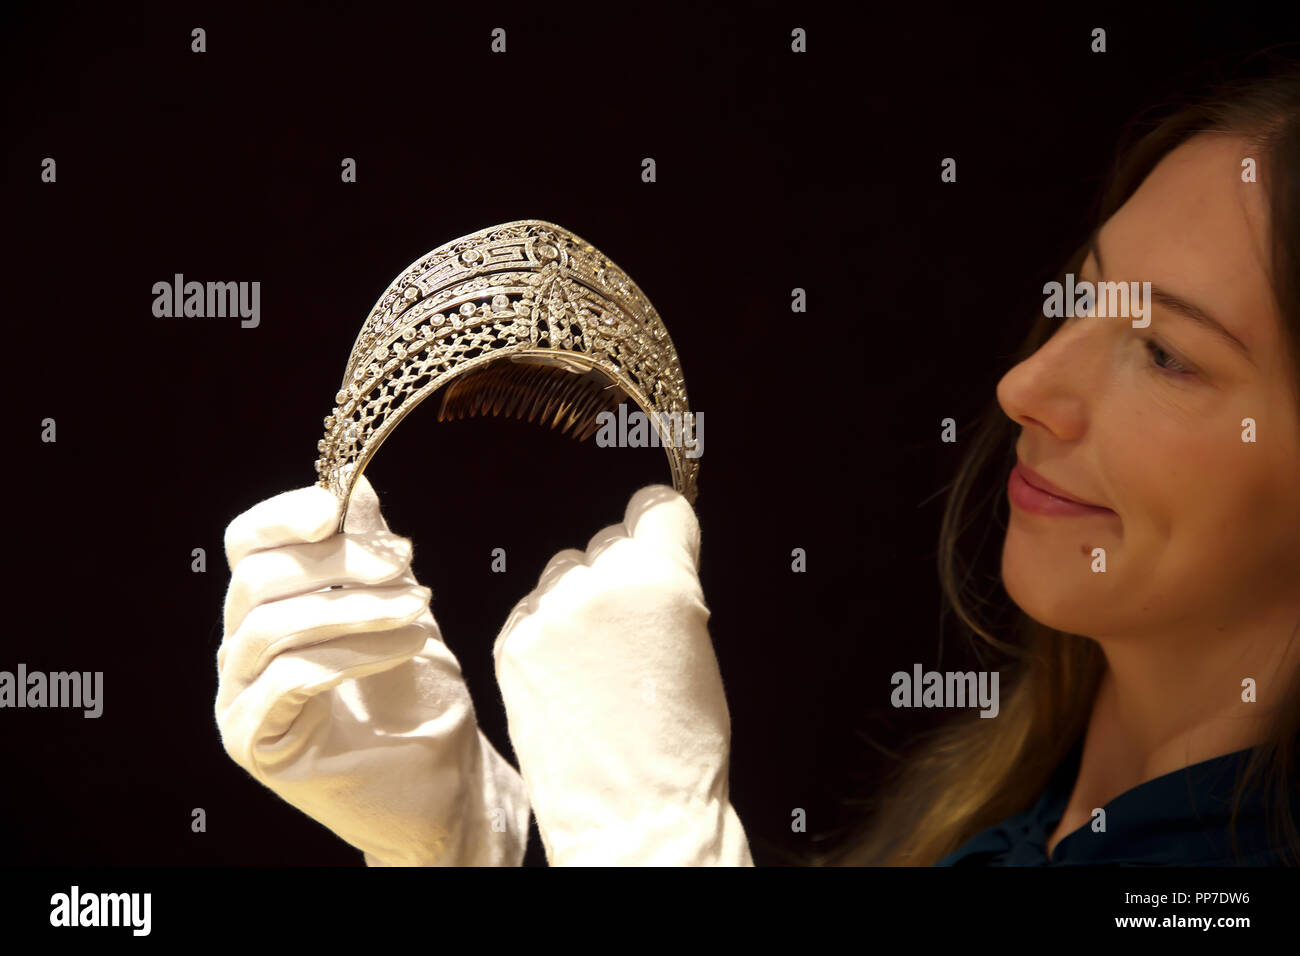 London,UK,24th September 2018,Fine Jewellery Photocall takes place at Bonhams in London.A Belle Époque Diamond 'Meander' Tiara, was designed by Spanish royal jeweller Ansorena and owned by Spanish noblewoman Esperanza Chávarri Aldecoa, Countess of Villagonzalo, wife of Fernando Maldonado Salabert, 8th Count of Villagonzalo.  Dated circa 1900, it is estimated at £80,000-120,000 and has previously been exhibited at the National Museum of Decorative Arts, Madrid in 1995. Credit: Keith Larby/Alamy Live News - Stock Image